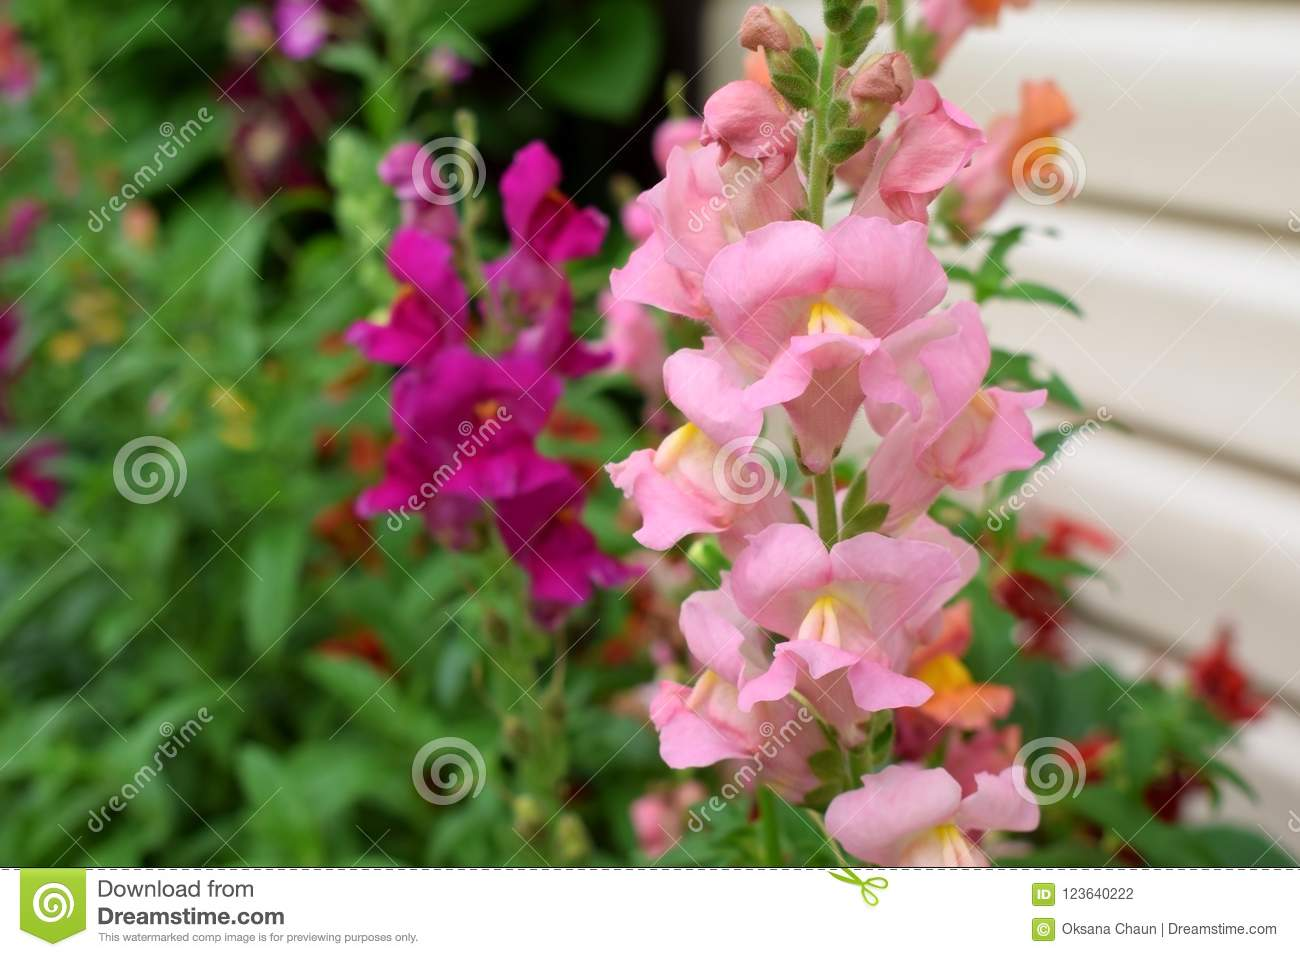 Pink Snapdragon Flowers Stock Photo Image Of Nature 123640222